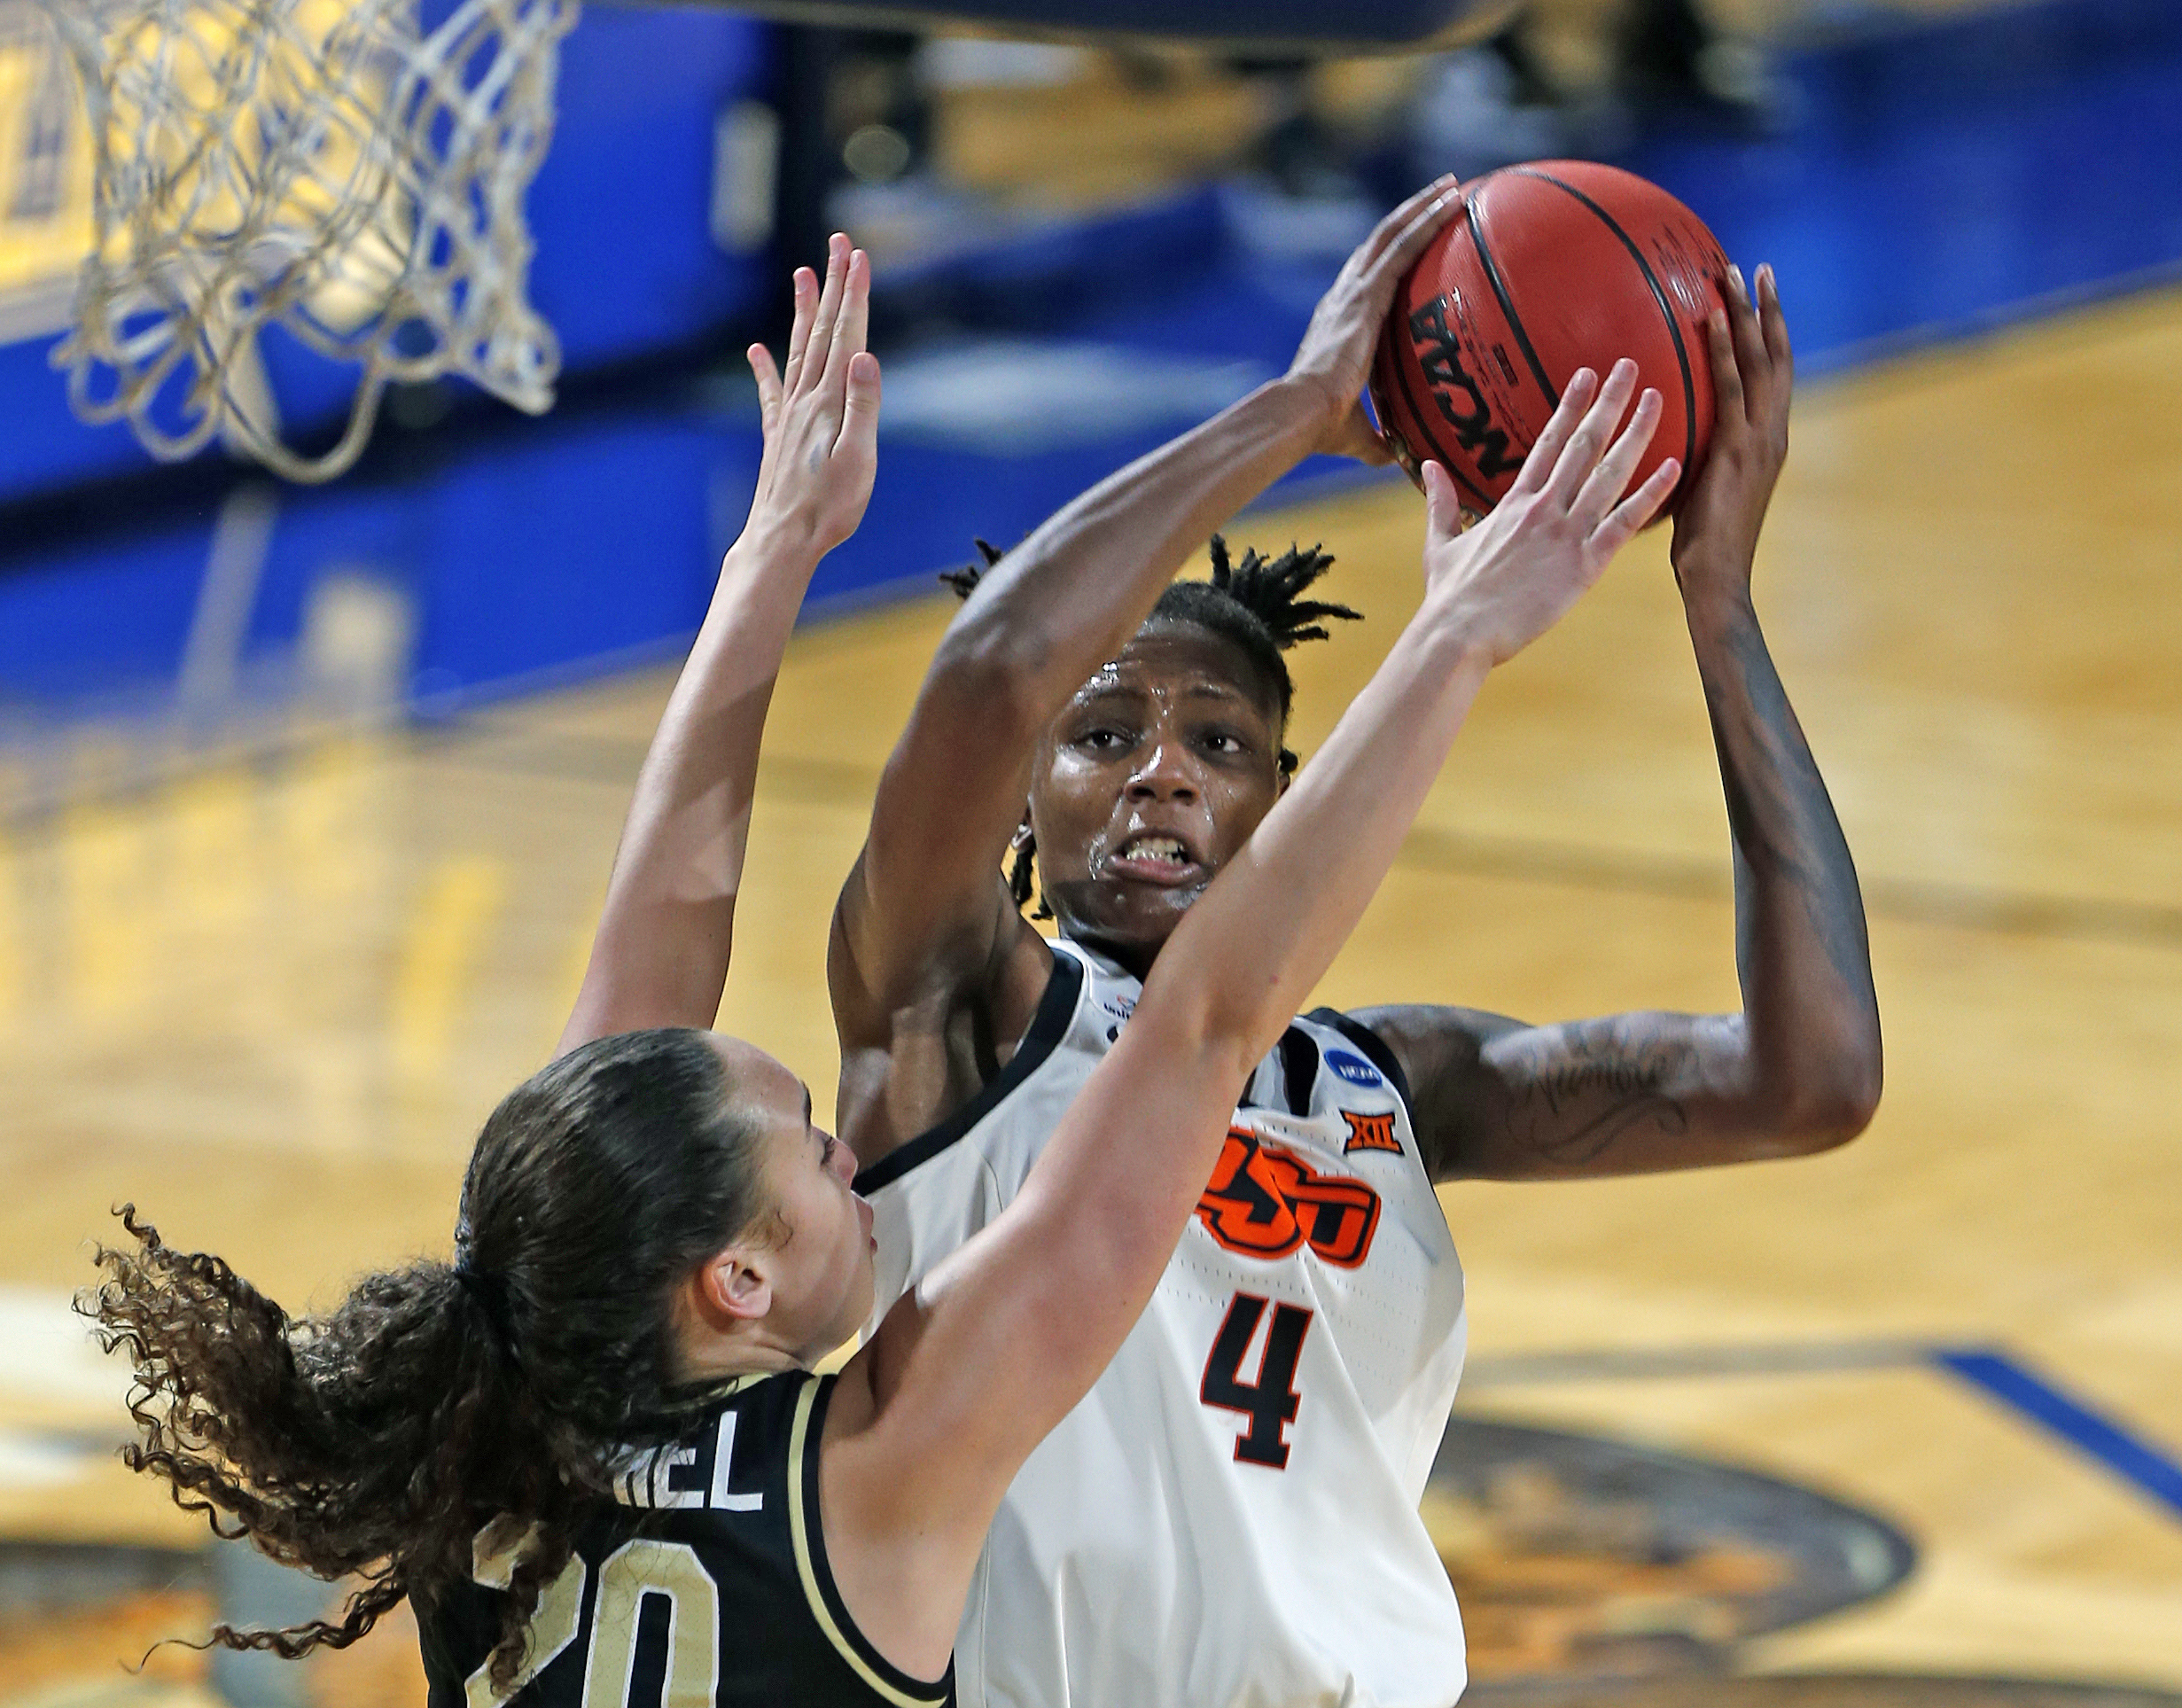 Oklahoma State forward Natasha Mack(4) shoots over Wake Forest forward Christina Morra(23) during the second half of a college basketball game in the first round of the women's NCAA tournament at the Greehey Arena in San Antonio, Texas, Sunday, March 21, 2021.